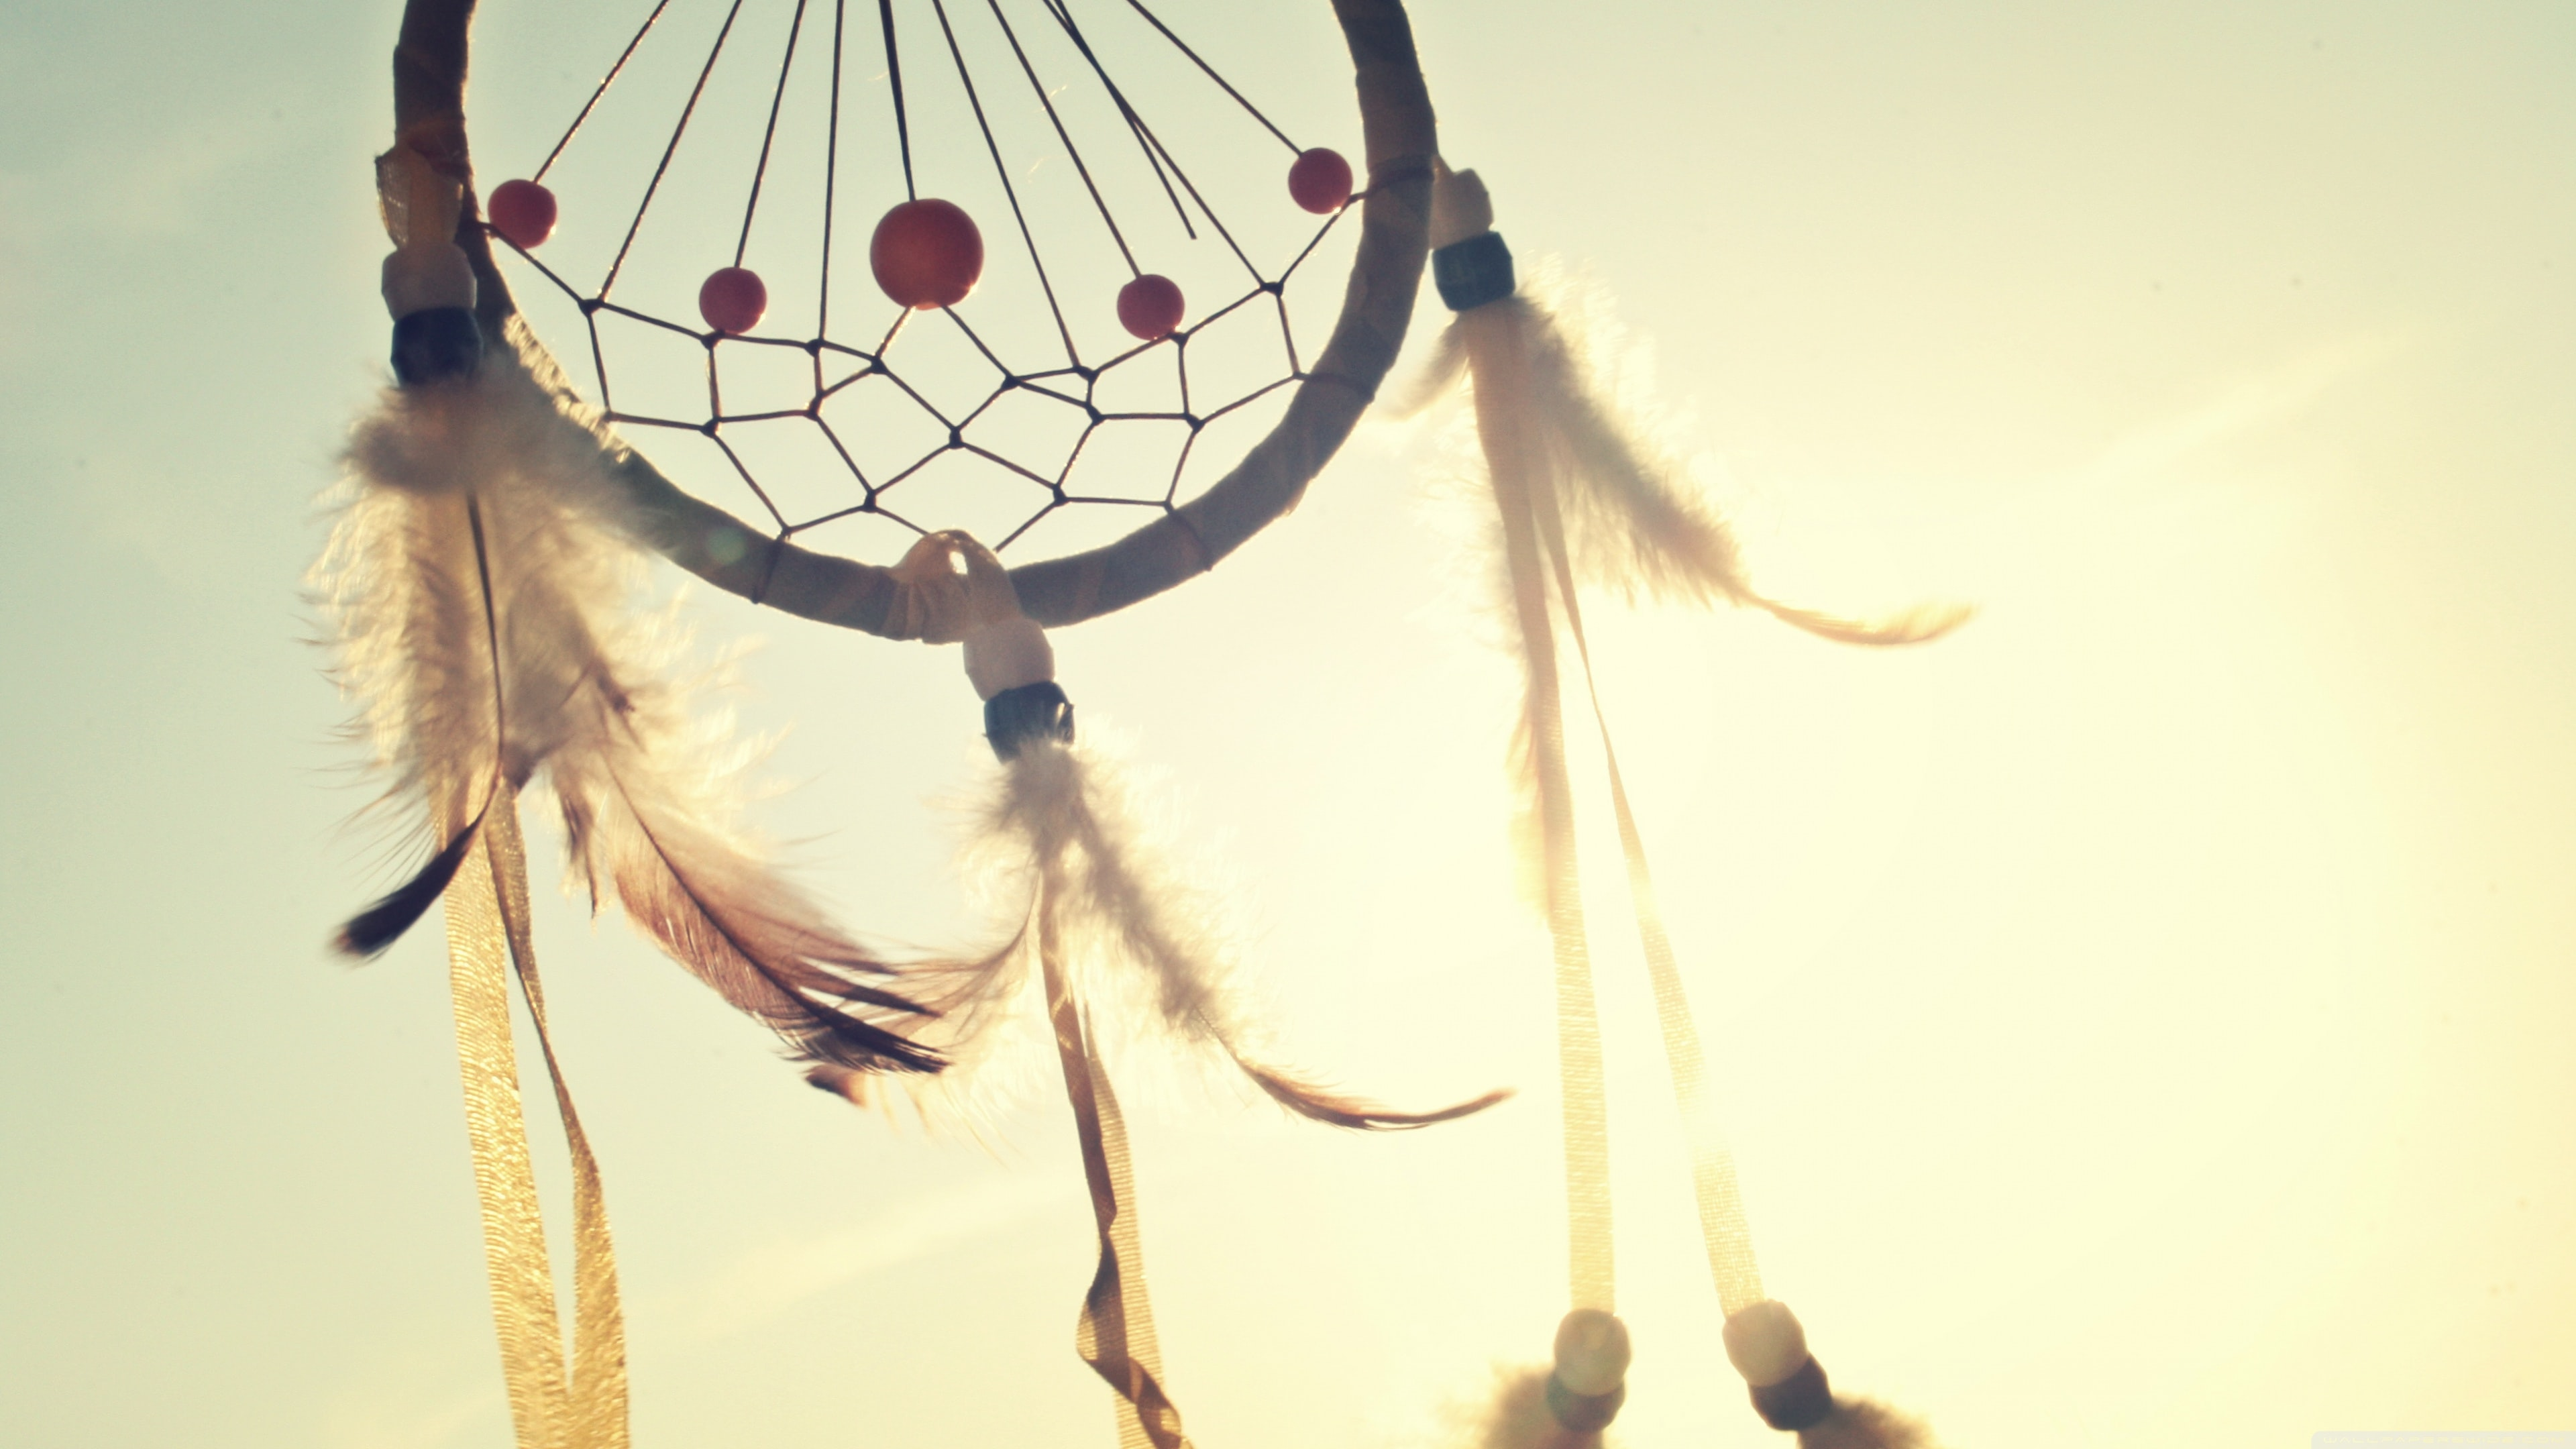 Dream Catcher, catch me a dream dreams stories